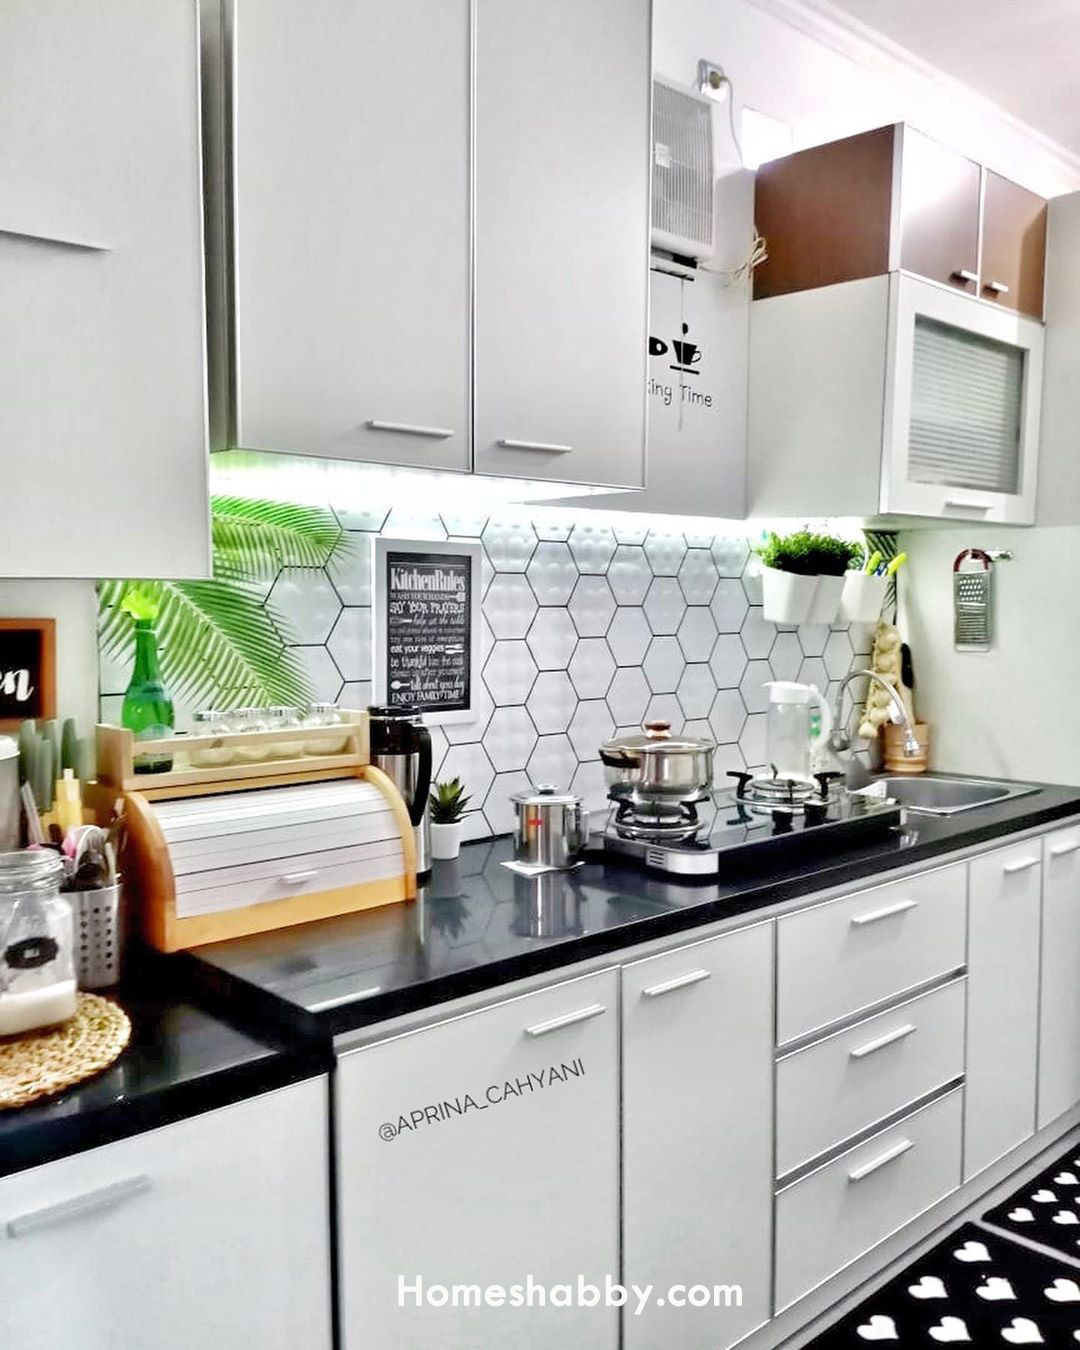 A Stylish Modern Kitchen Ideas For Interior Fascinating Designs Homeshabby Com Design Home Plans Home Decorating And Interior Design